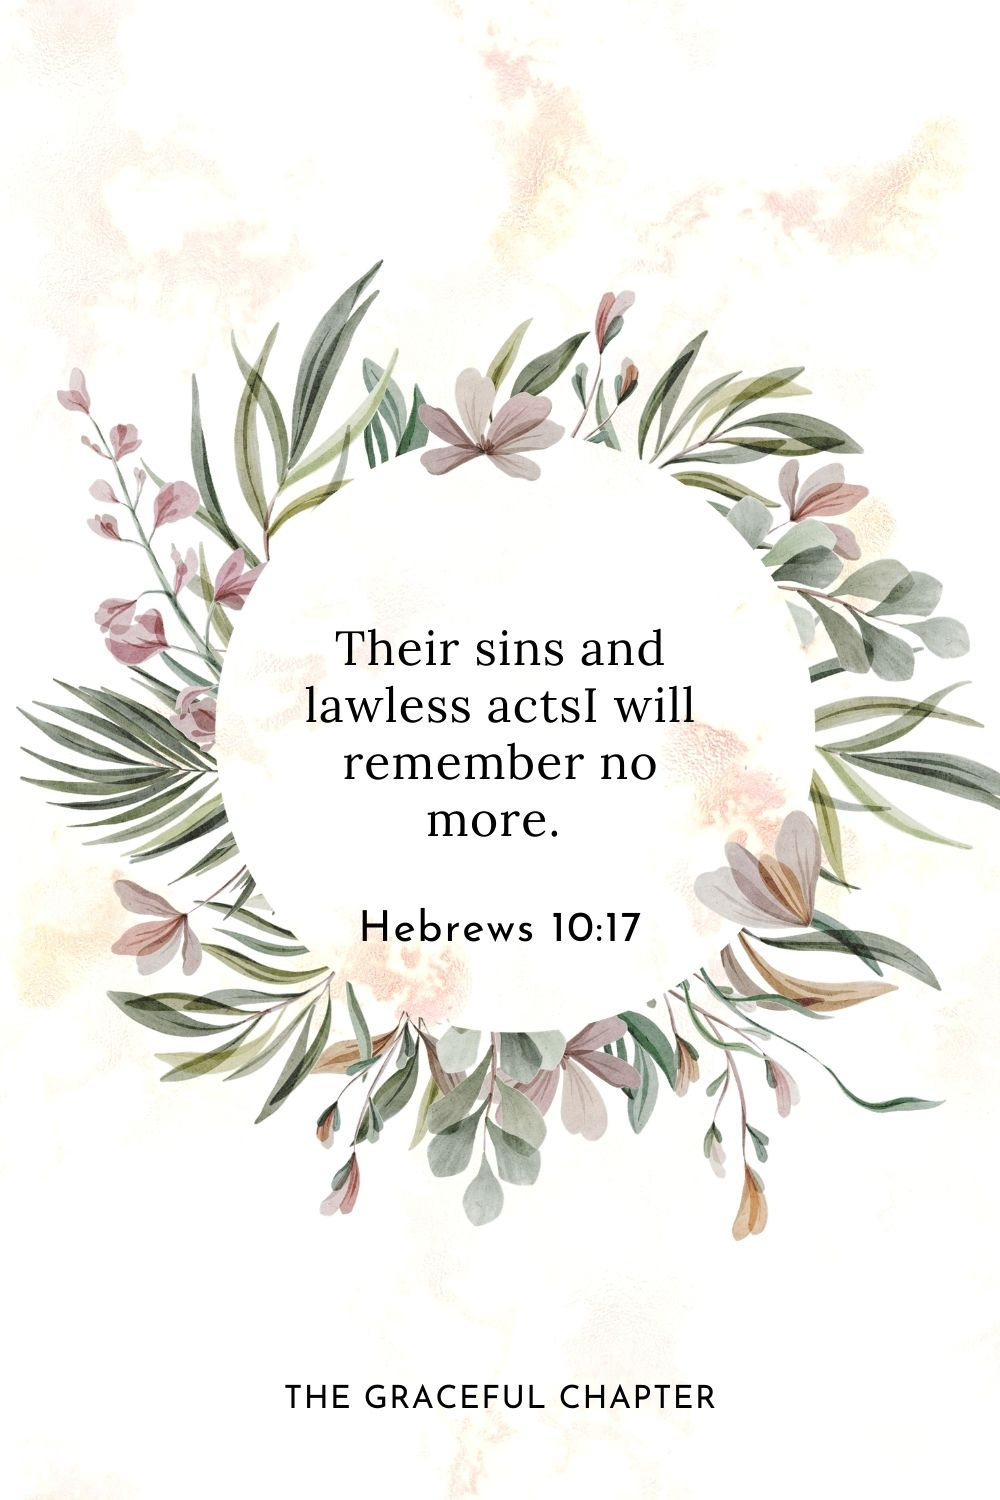 Their sins and lawless acts I will remember no more. Hebrews 10:17